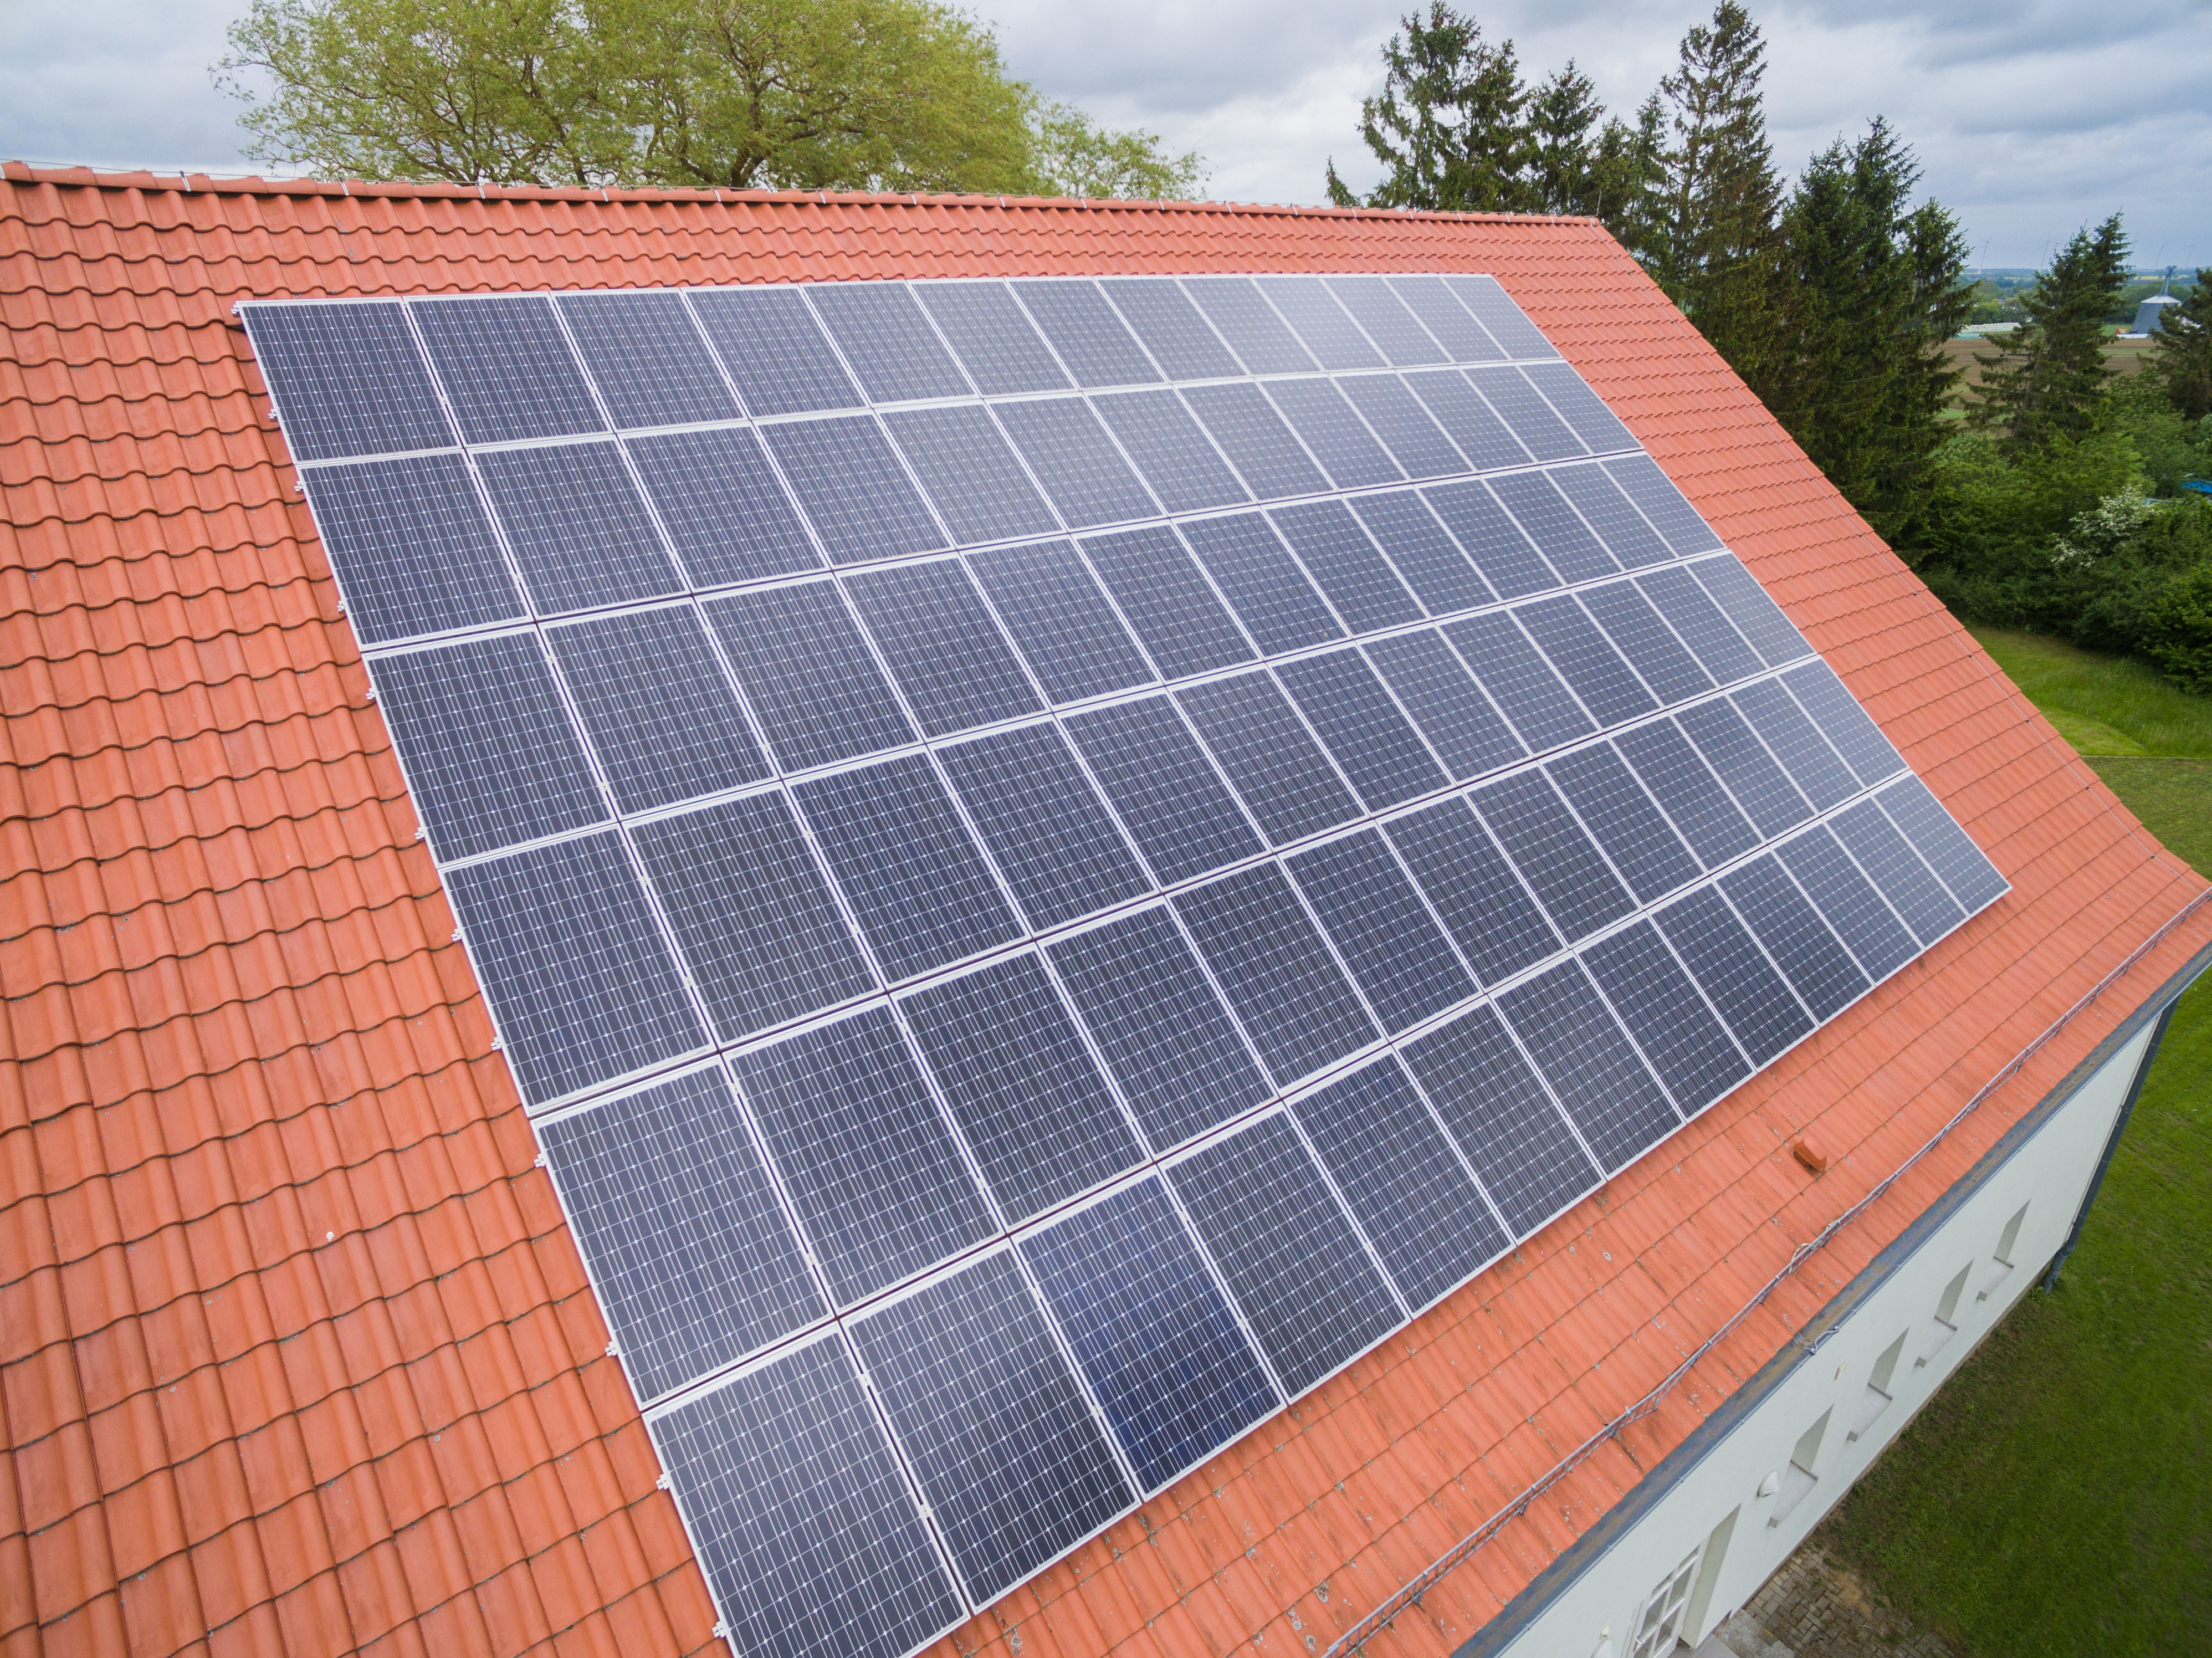 How Hard Is It To Install Solar Panel On A Townhome Quora Electricity From Panels Does Work Home For If You Are Looking Solutions I May Be Able Help Do Here But Theres No Bias Hahasmarts Online Price